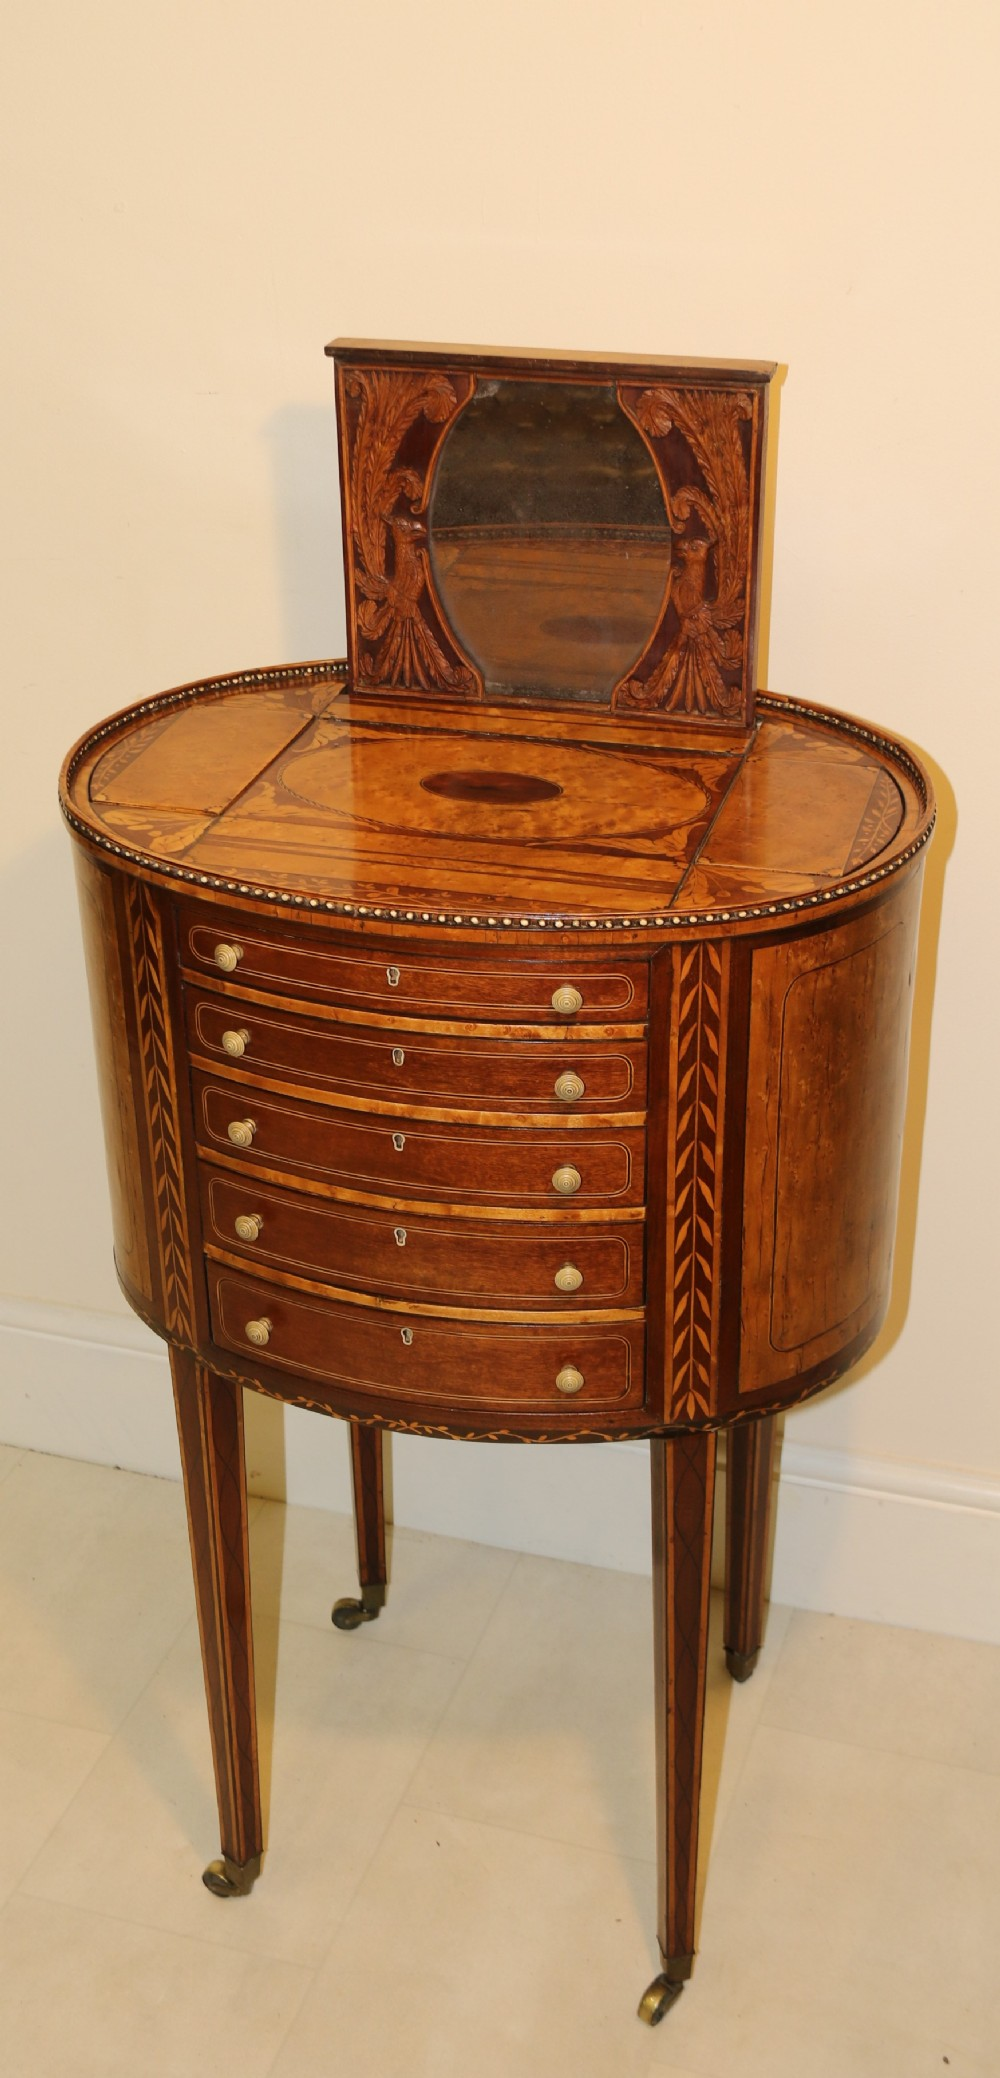 a rare and exquisite george iii ladies worktable with multiple secret rising compartments